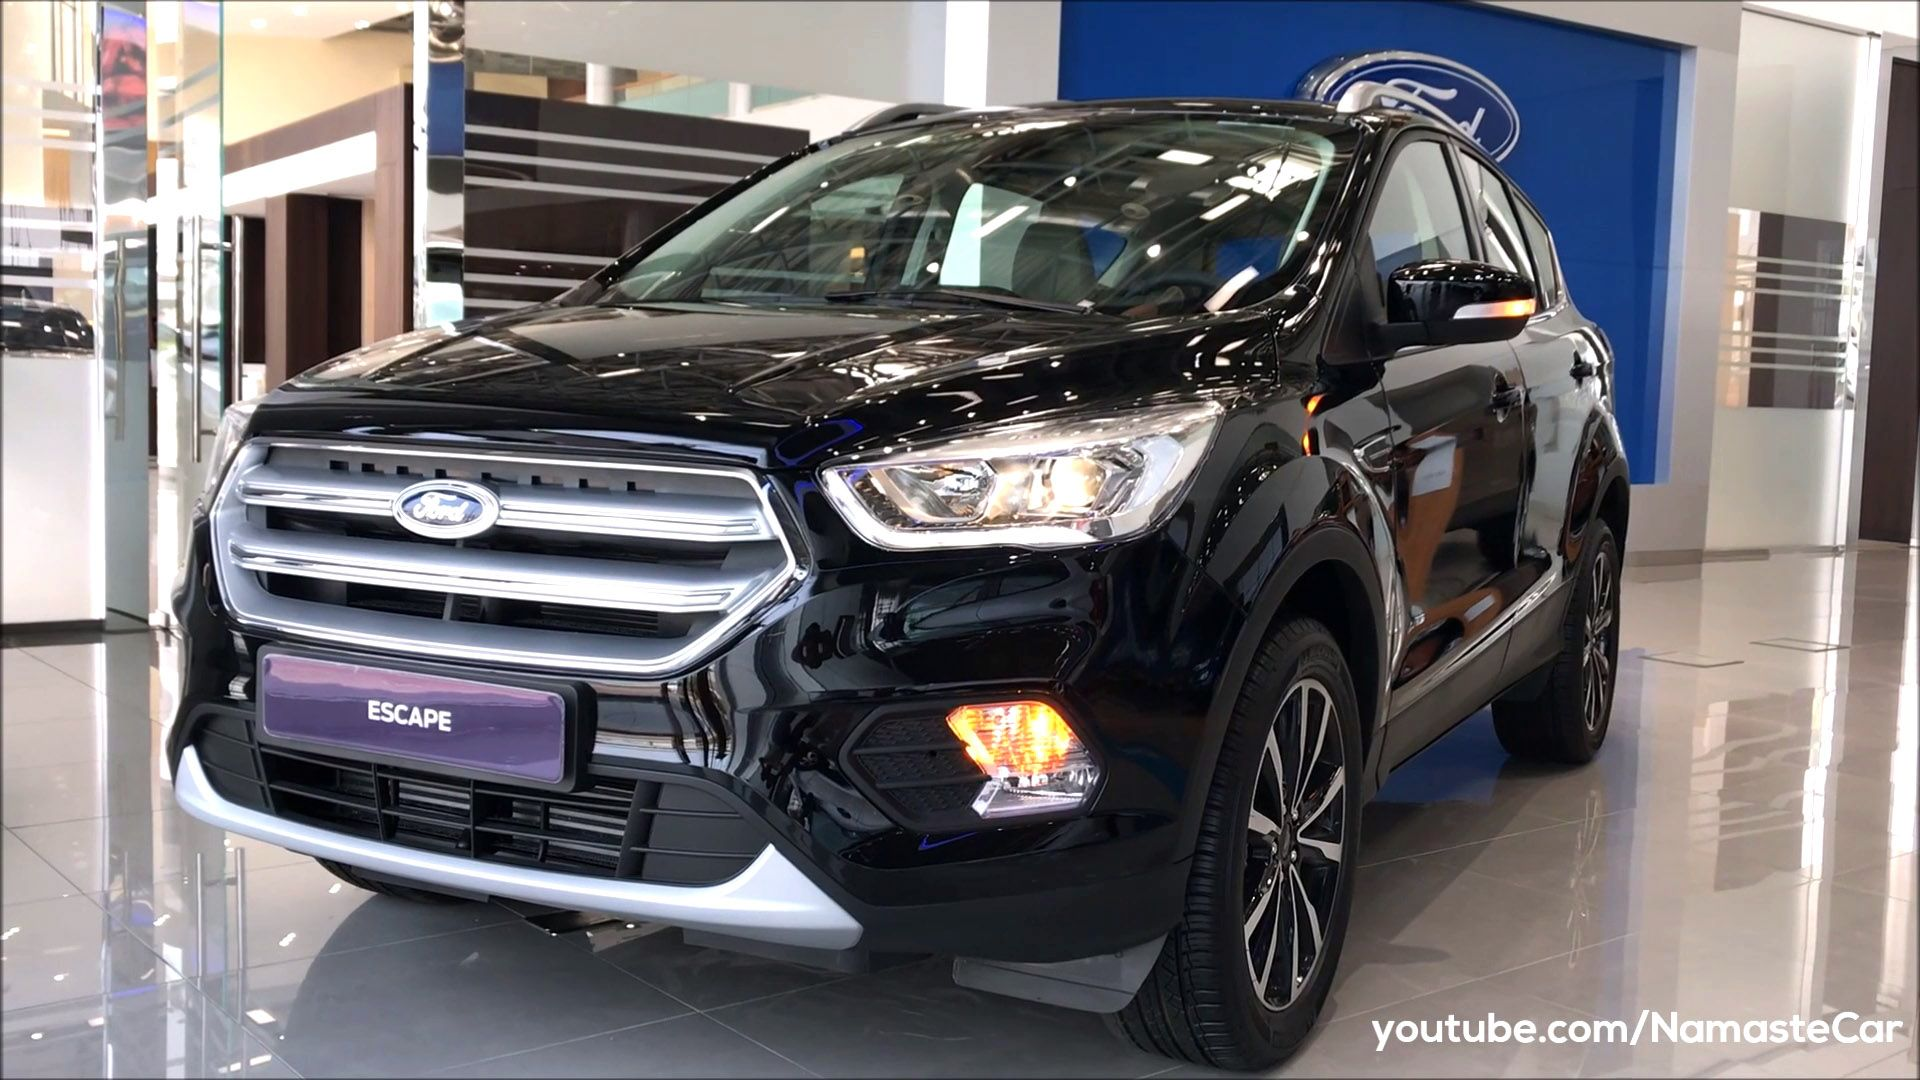 The Fordescape Is A Compact Crossover Vehicle Sold By Ford